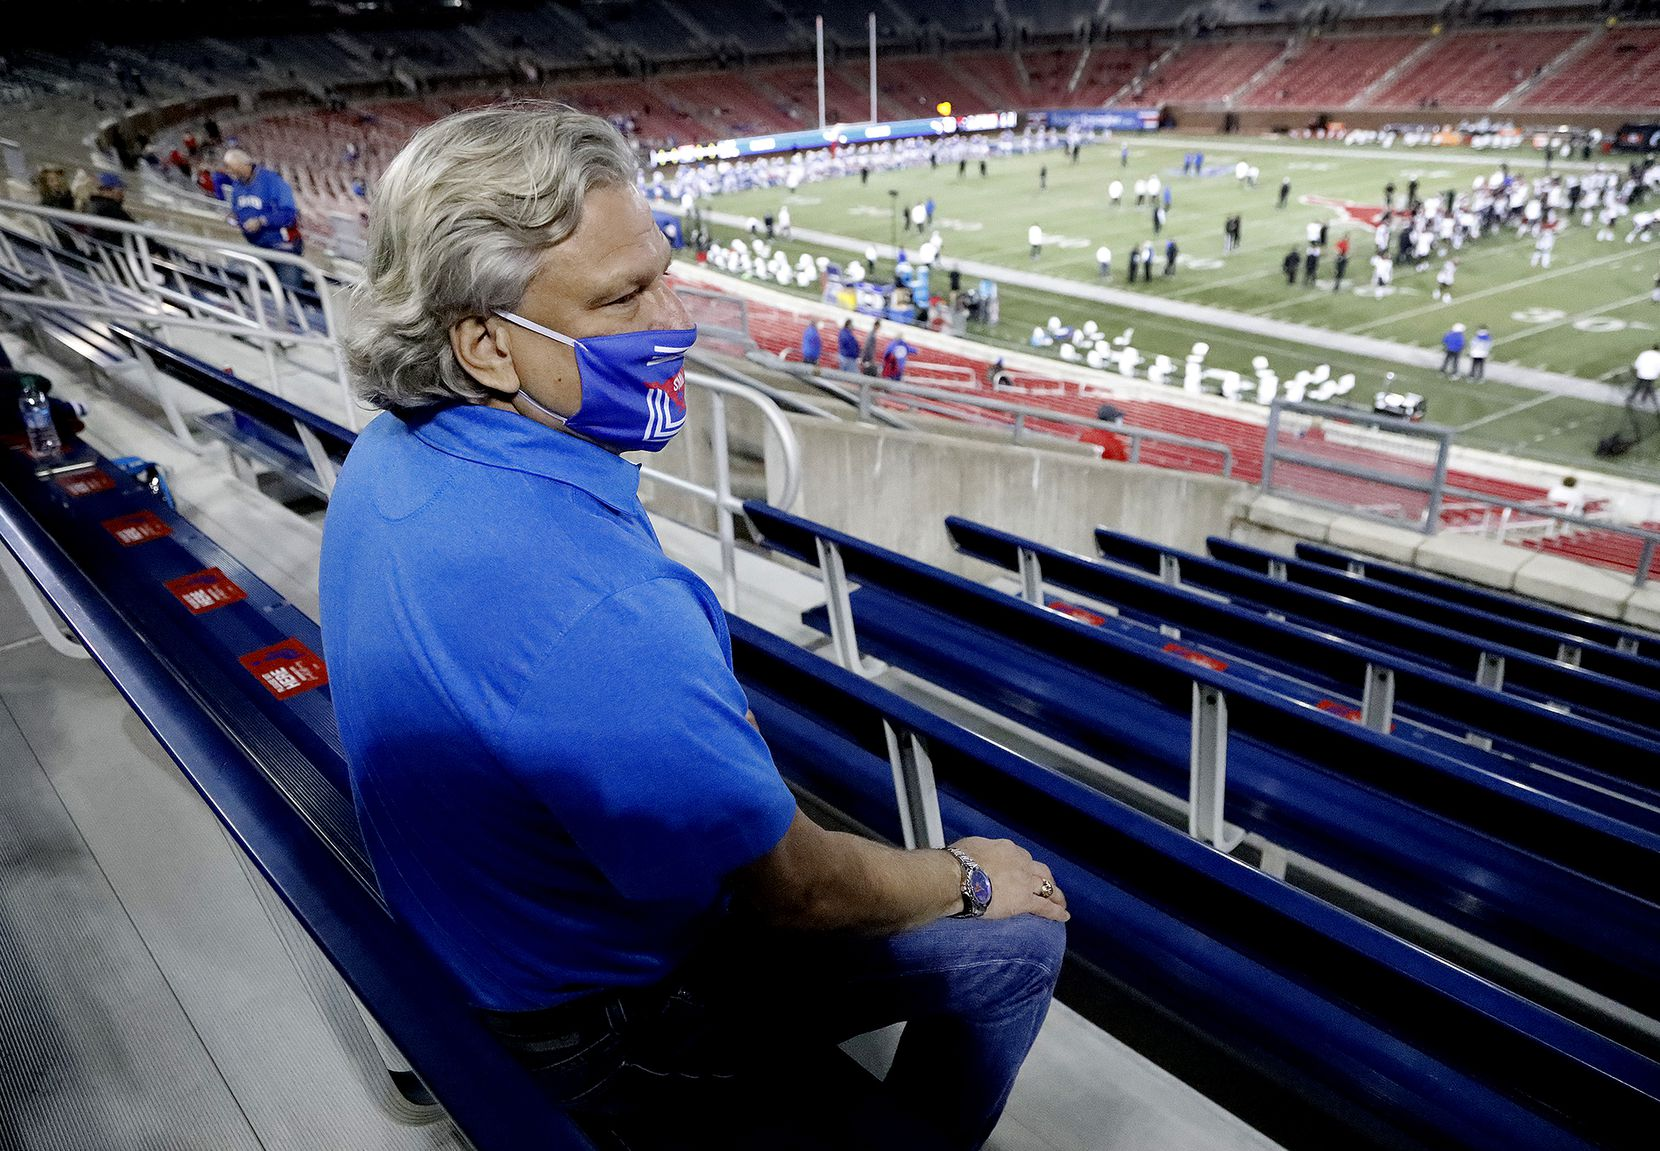 SMU super fan Paul Layne watches warm ups  as SMU hosted Cincinnati University in an AAC football game at Ford Stadium in Dallas on Saturday night, October 24, 2020. (Stewart F. House/Special Contributor)